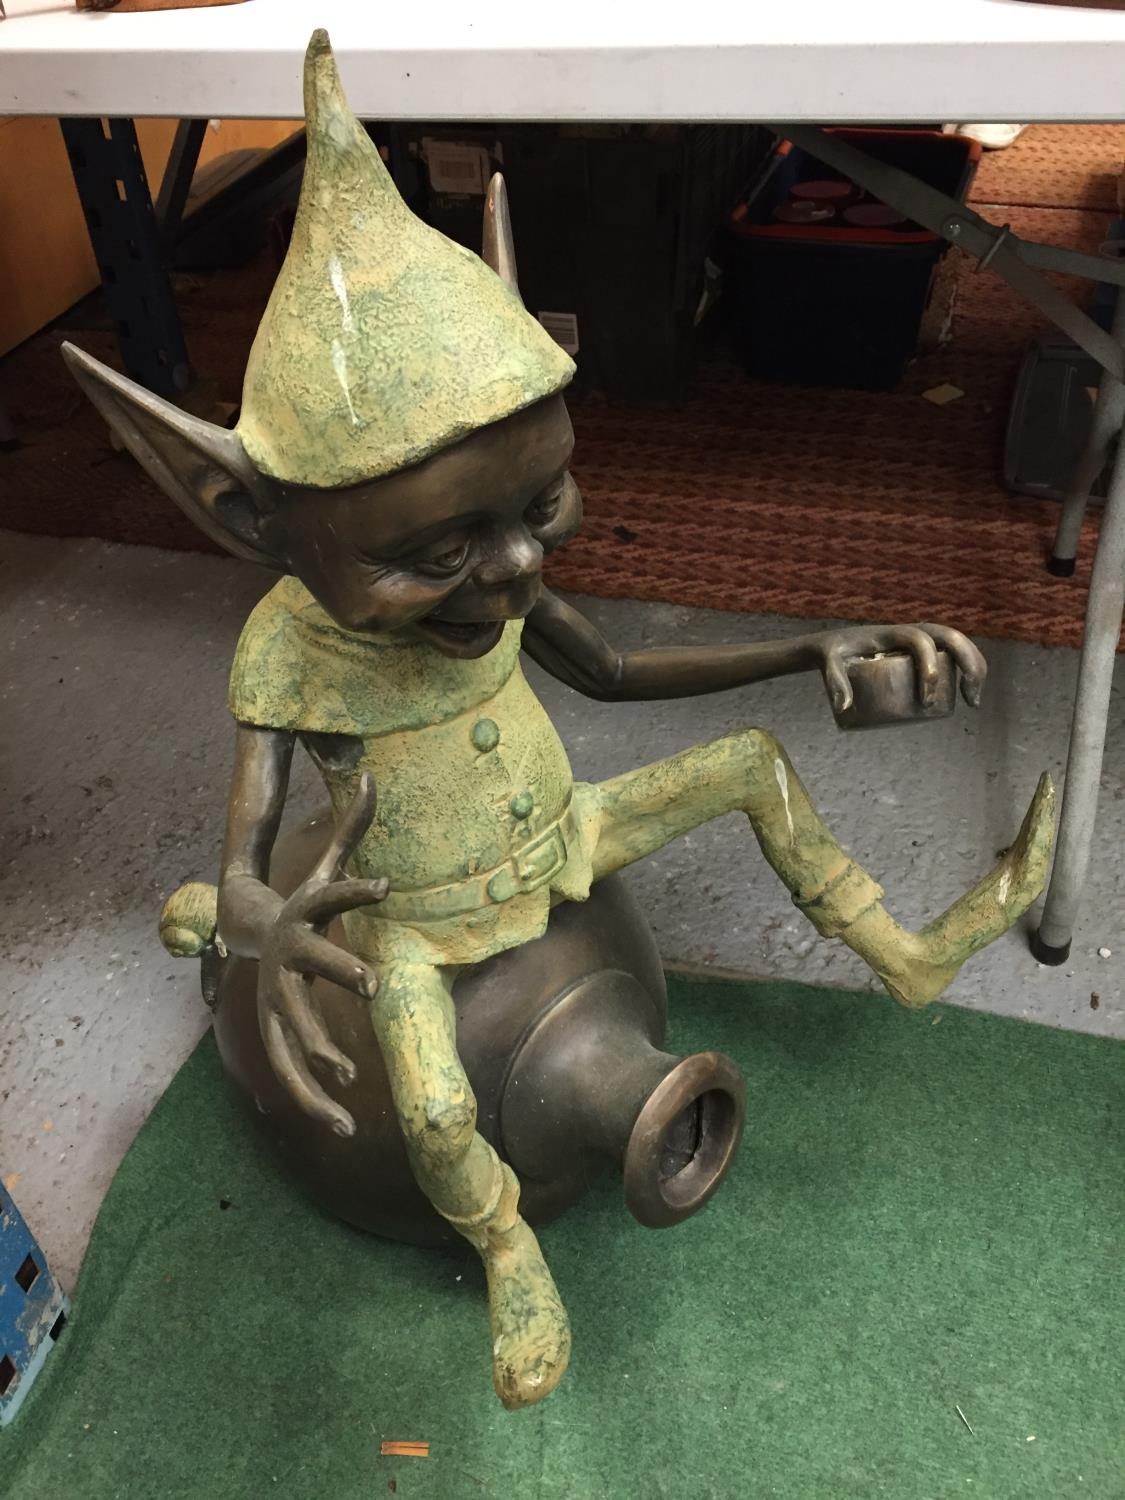 A LARGE BRONZE FIGURE OF A PIXIE - Image 2 of 4